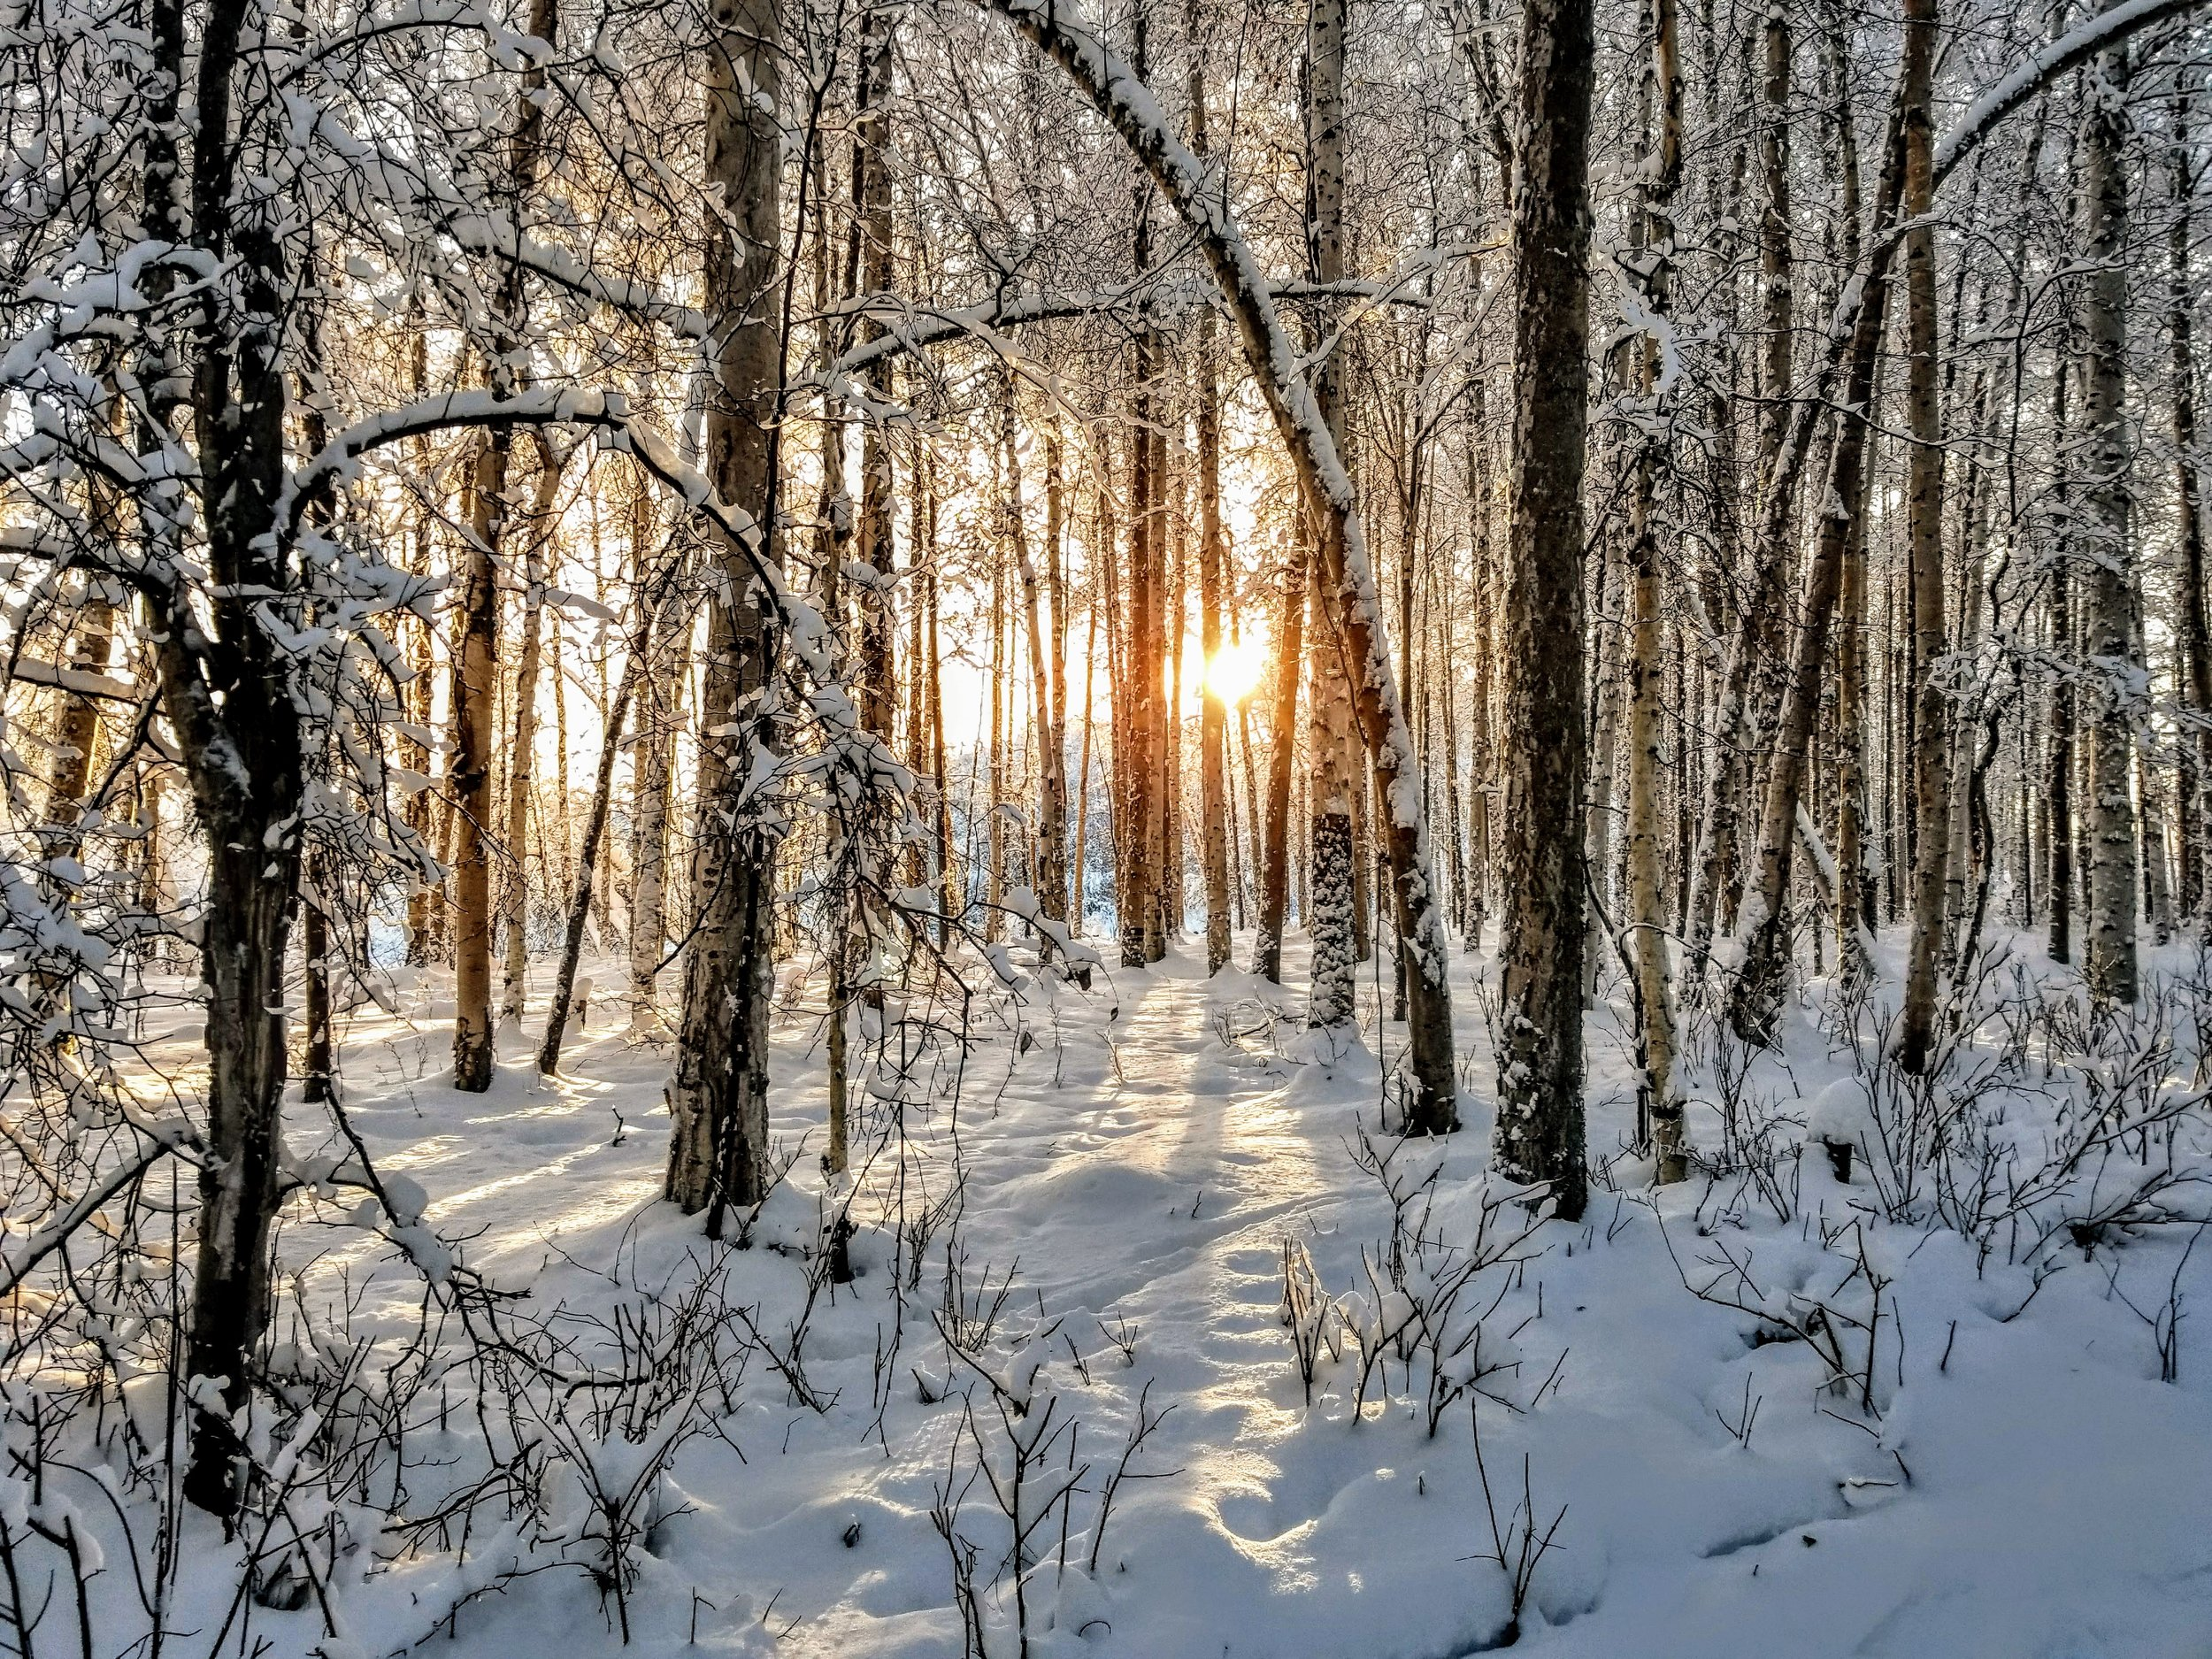 Snow covered woods don't get much better than this